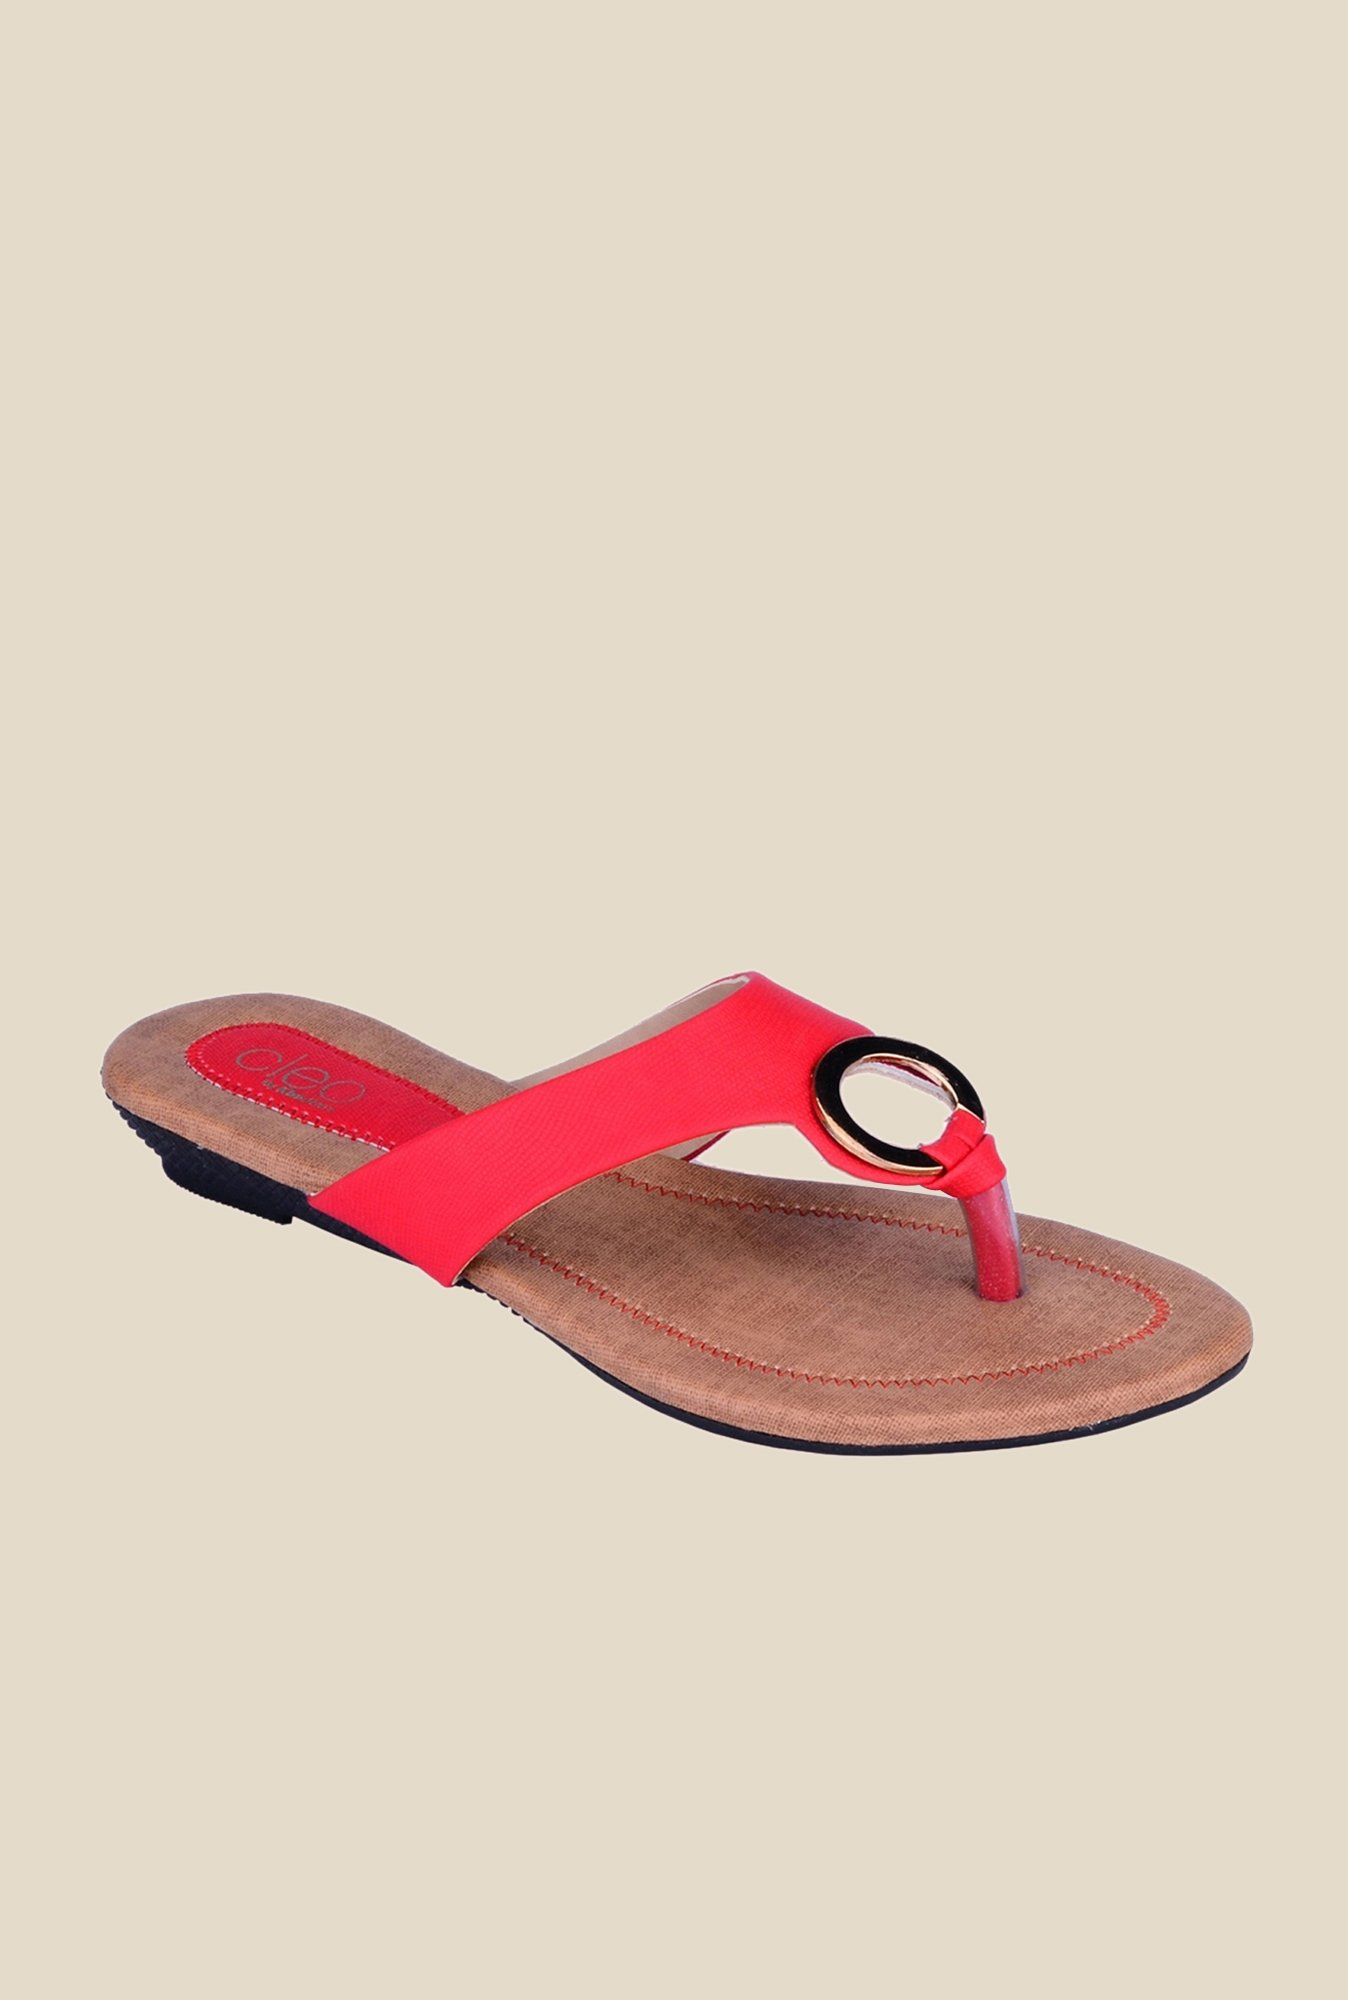 Khadim's Cleo Red Thong Sandals